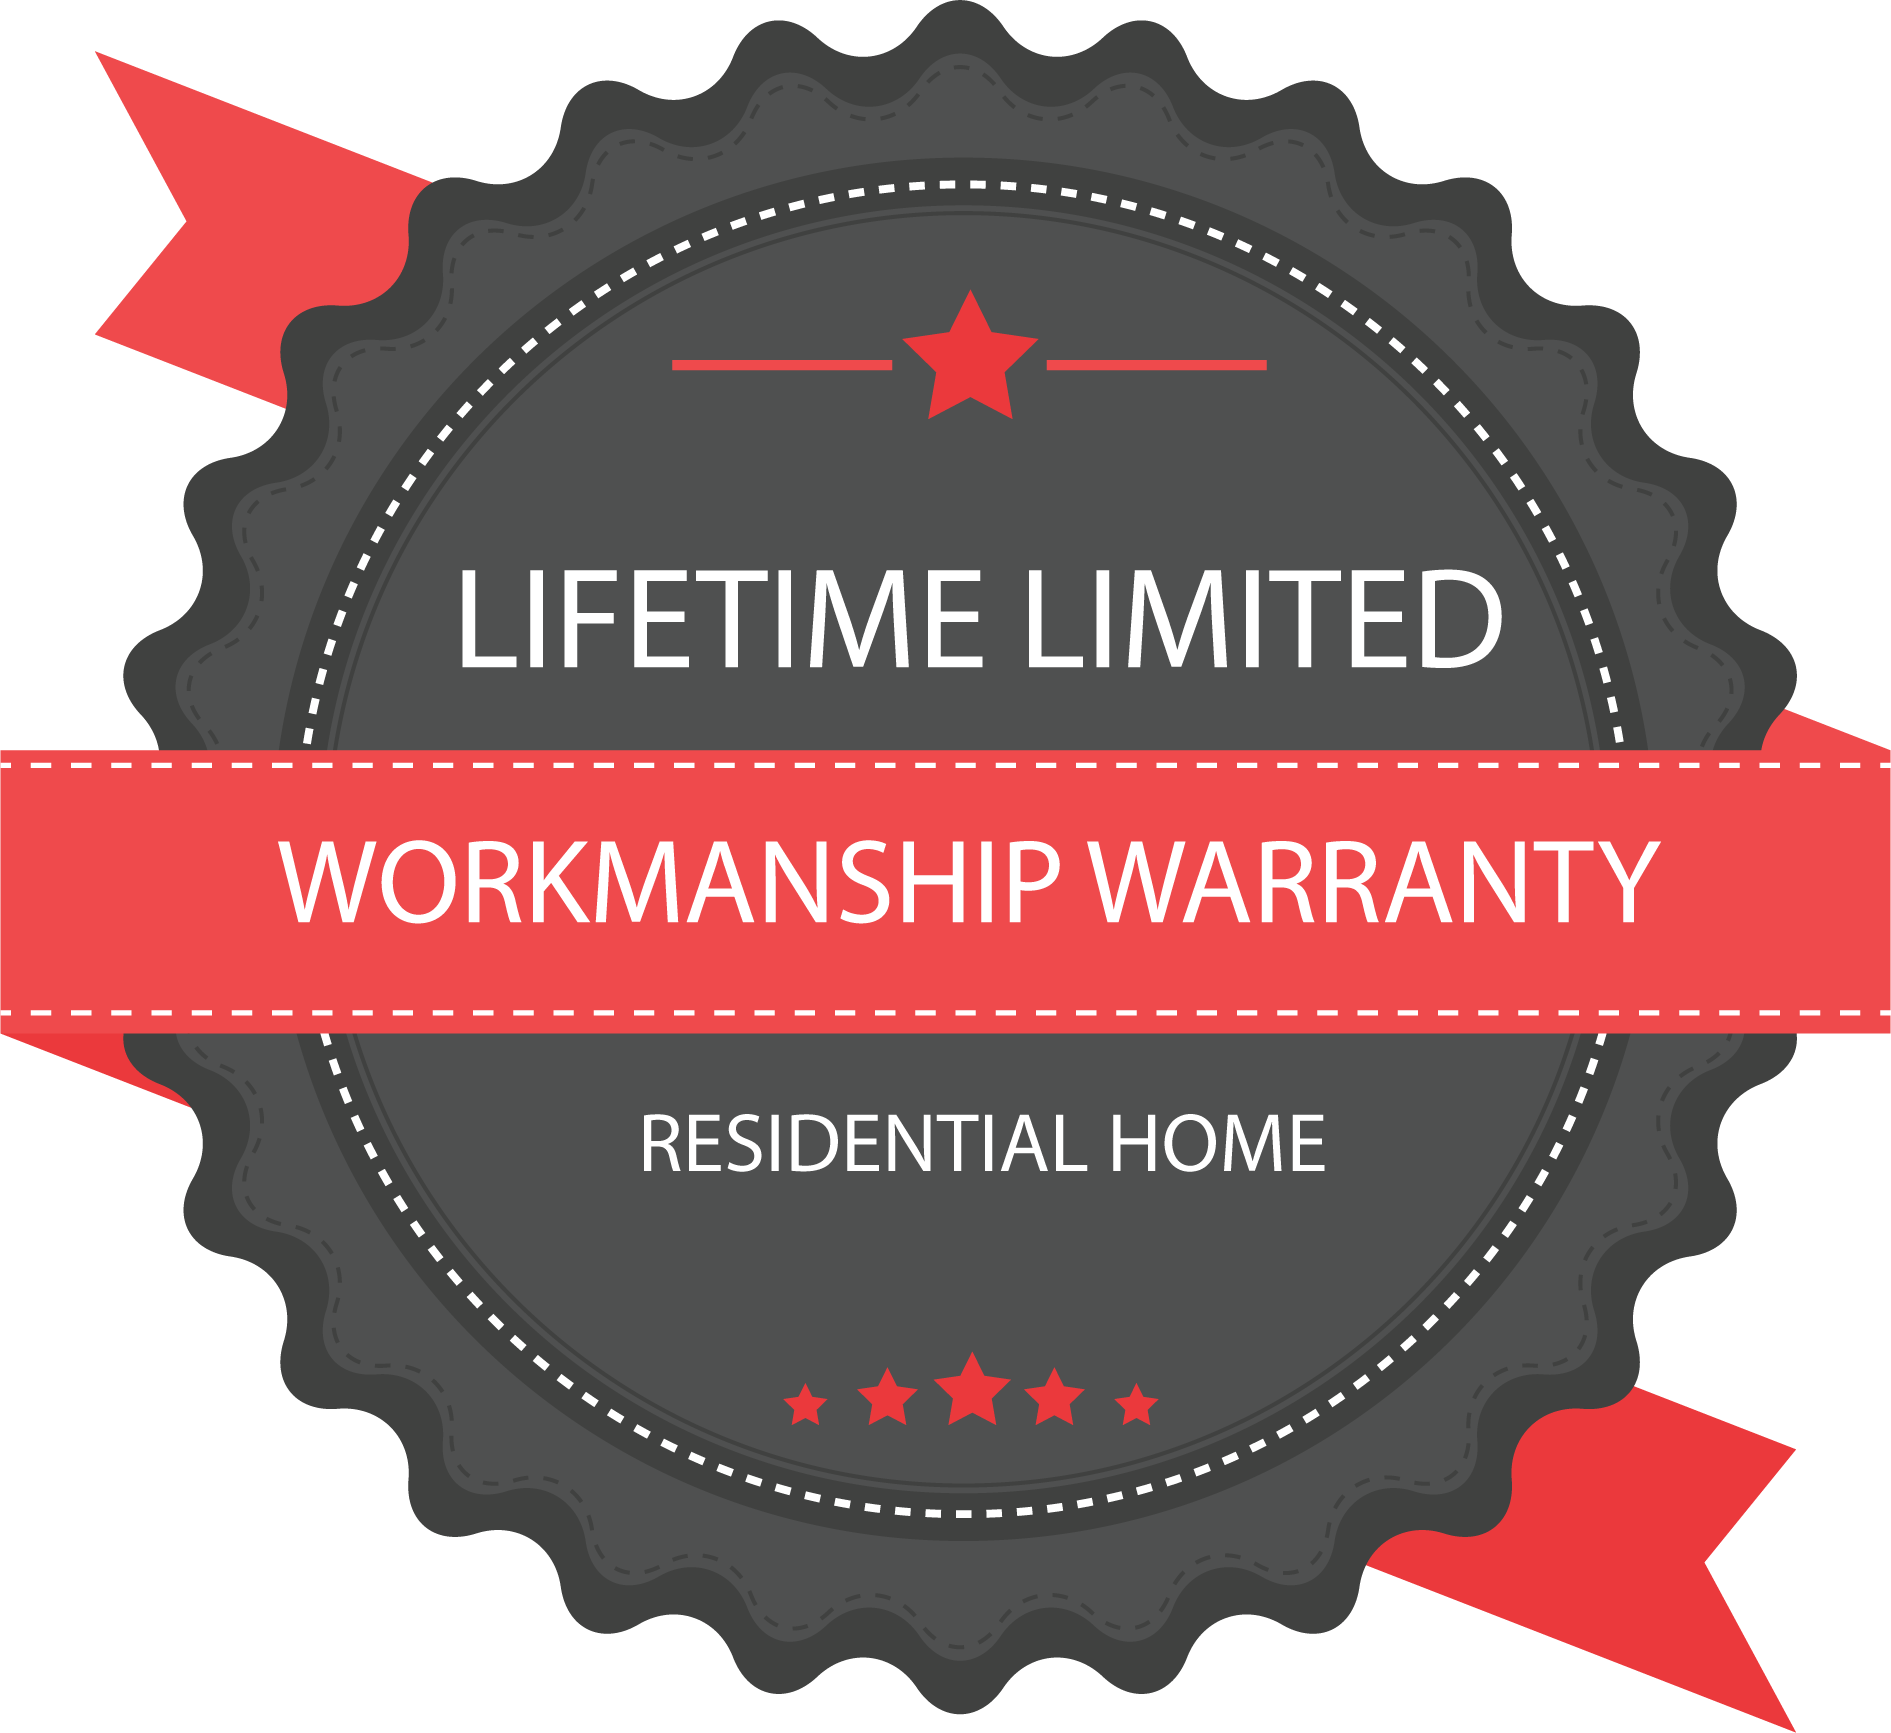 1st Choice Home Solution's Limited Lifetime Warranty Workmanship Badge